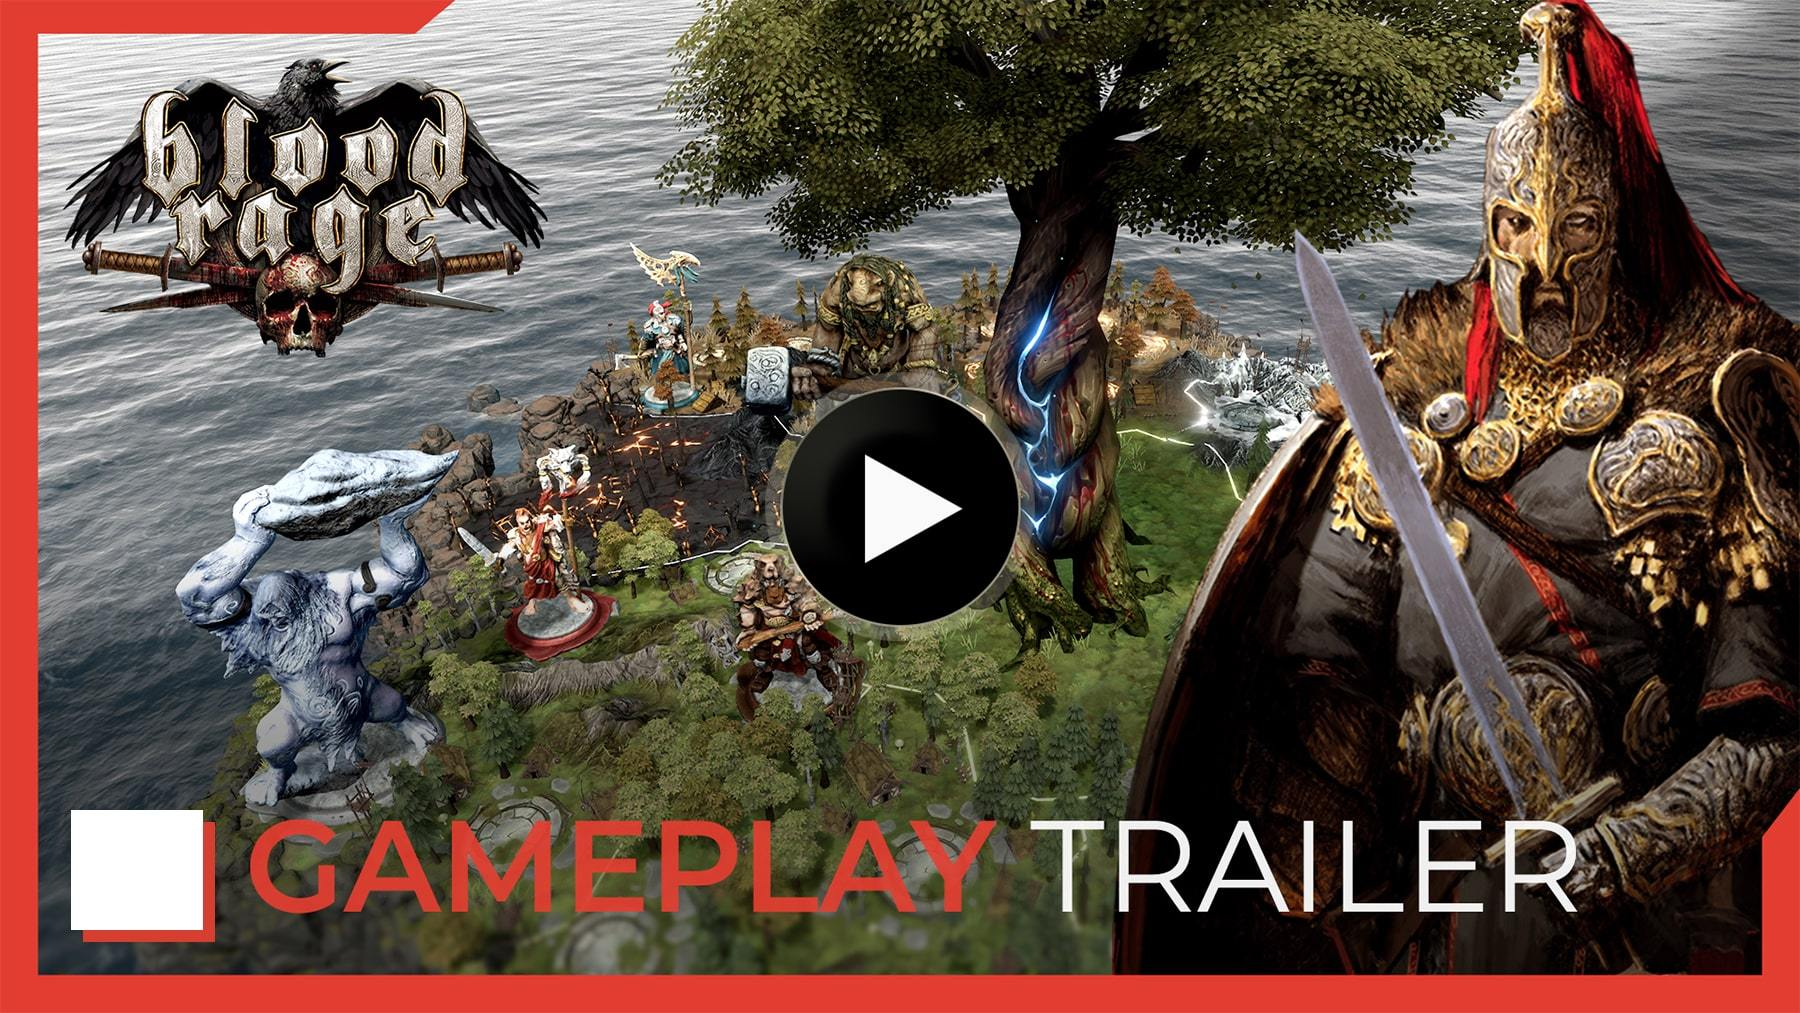 Discover gameplay trailer